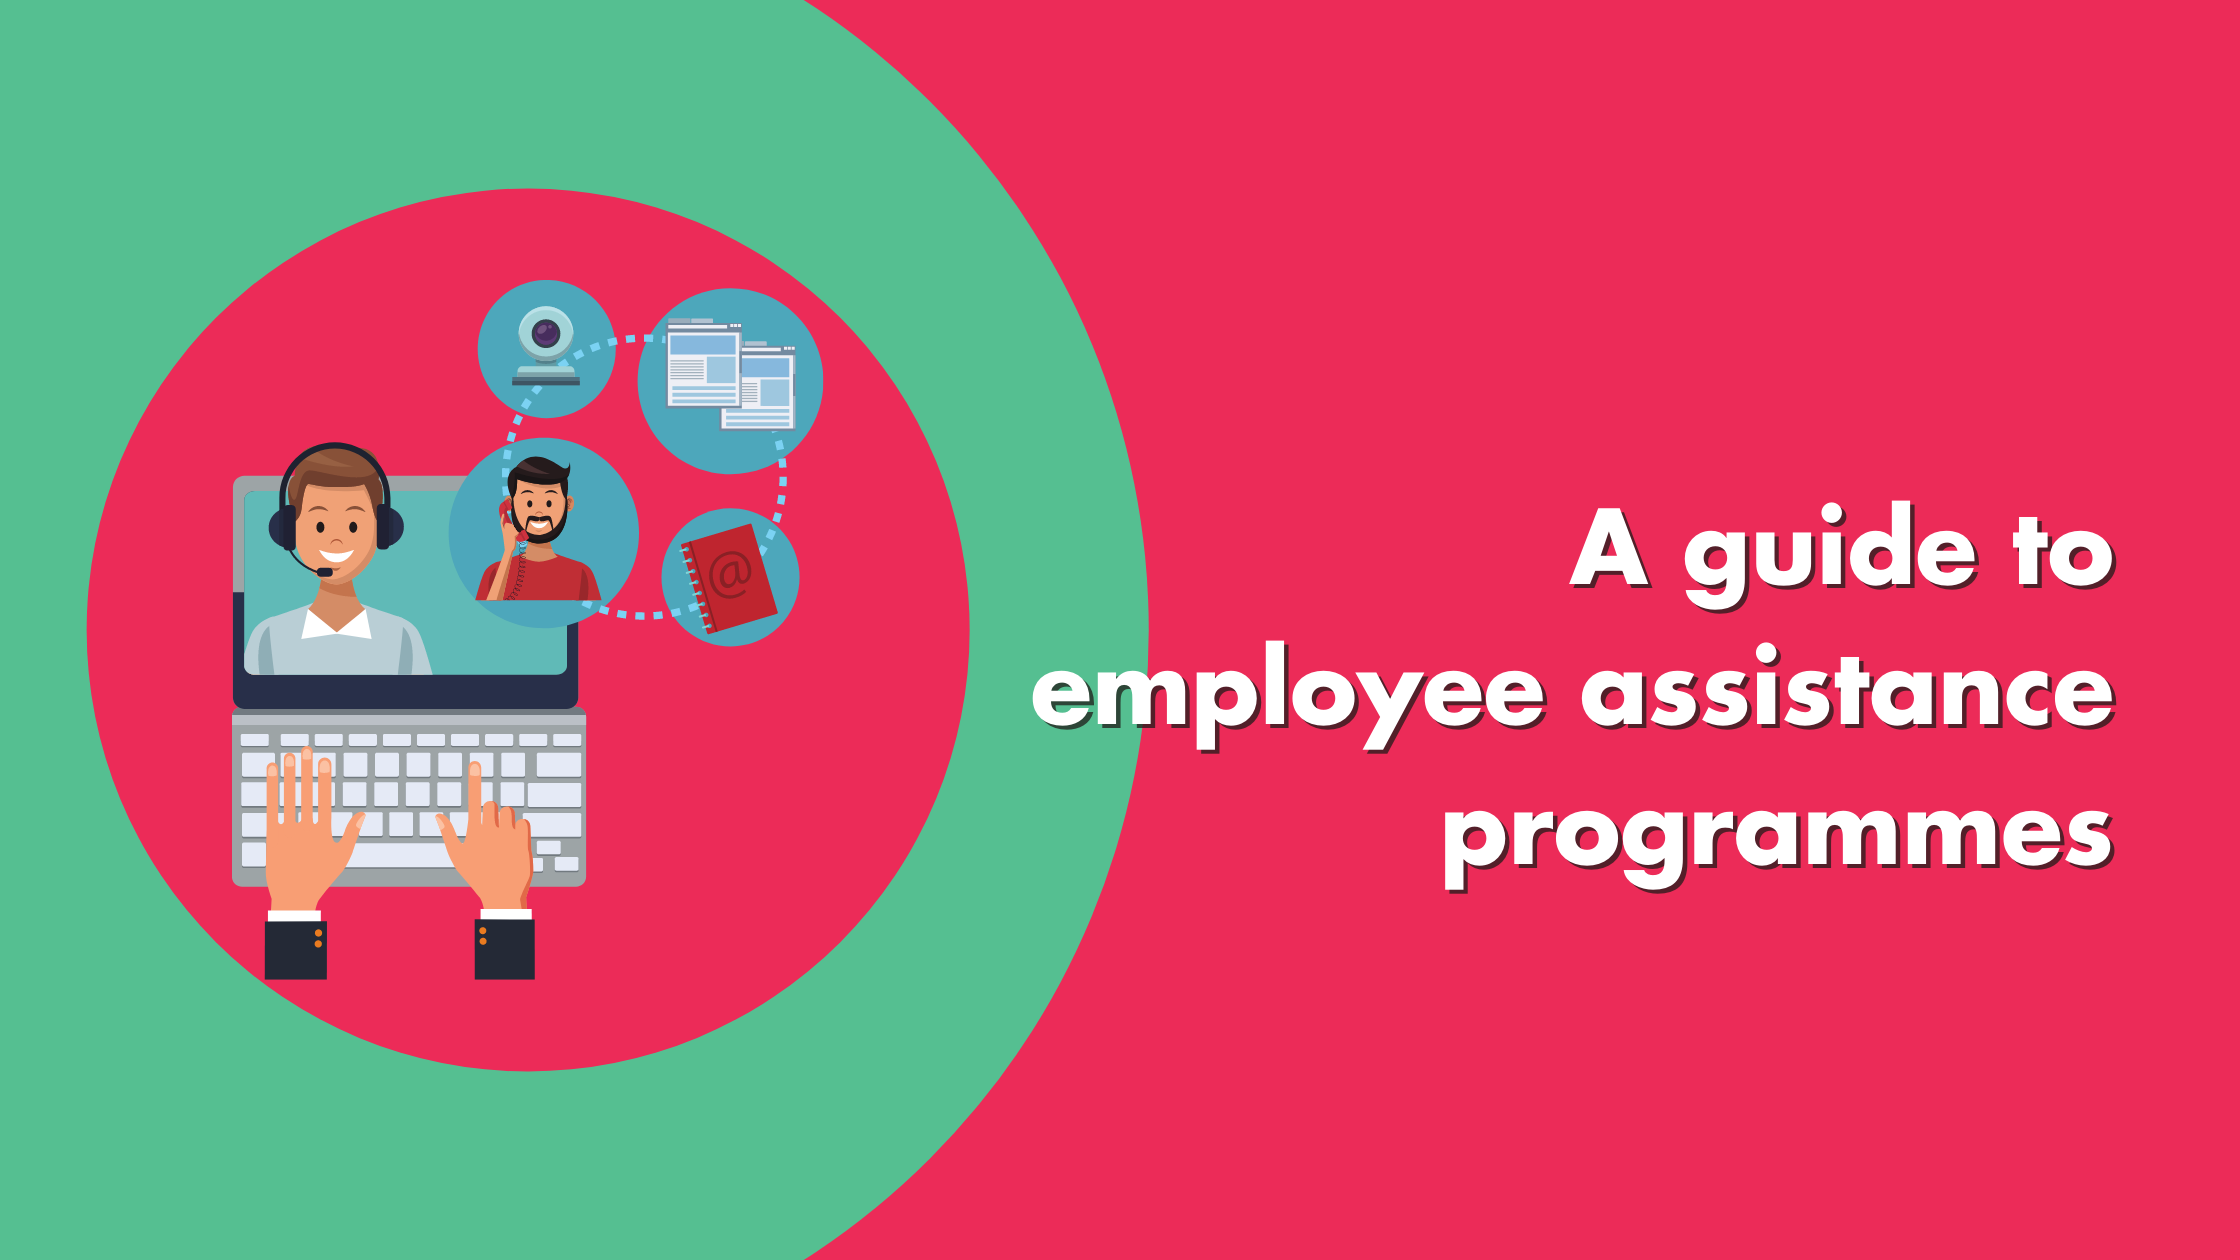 A Guide To Employee Assistance Programmes